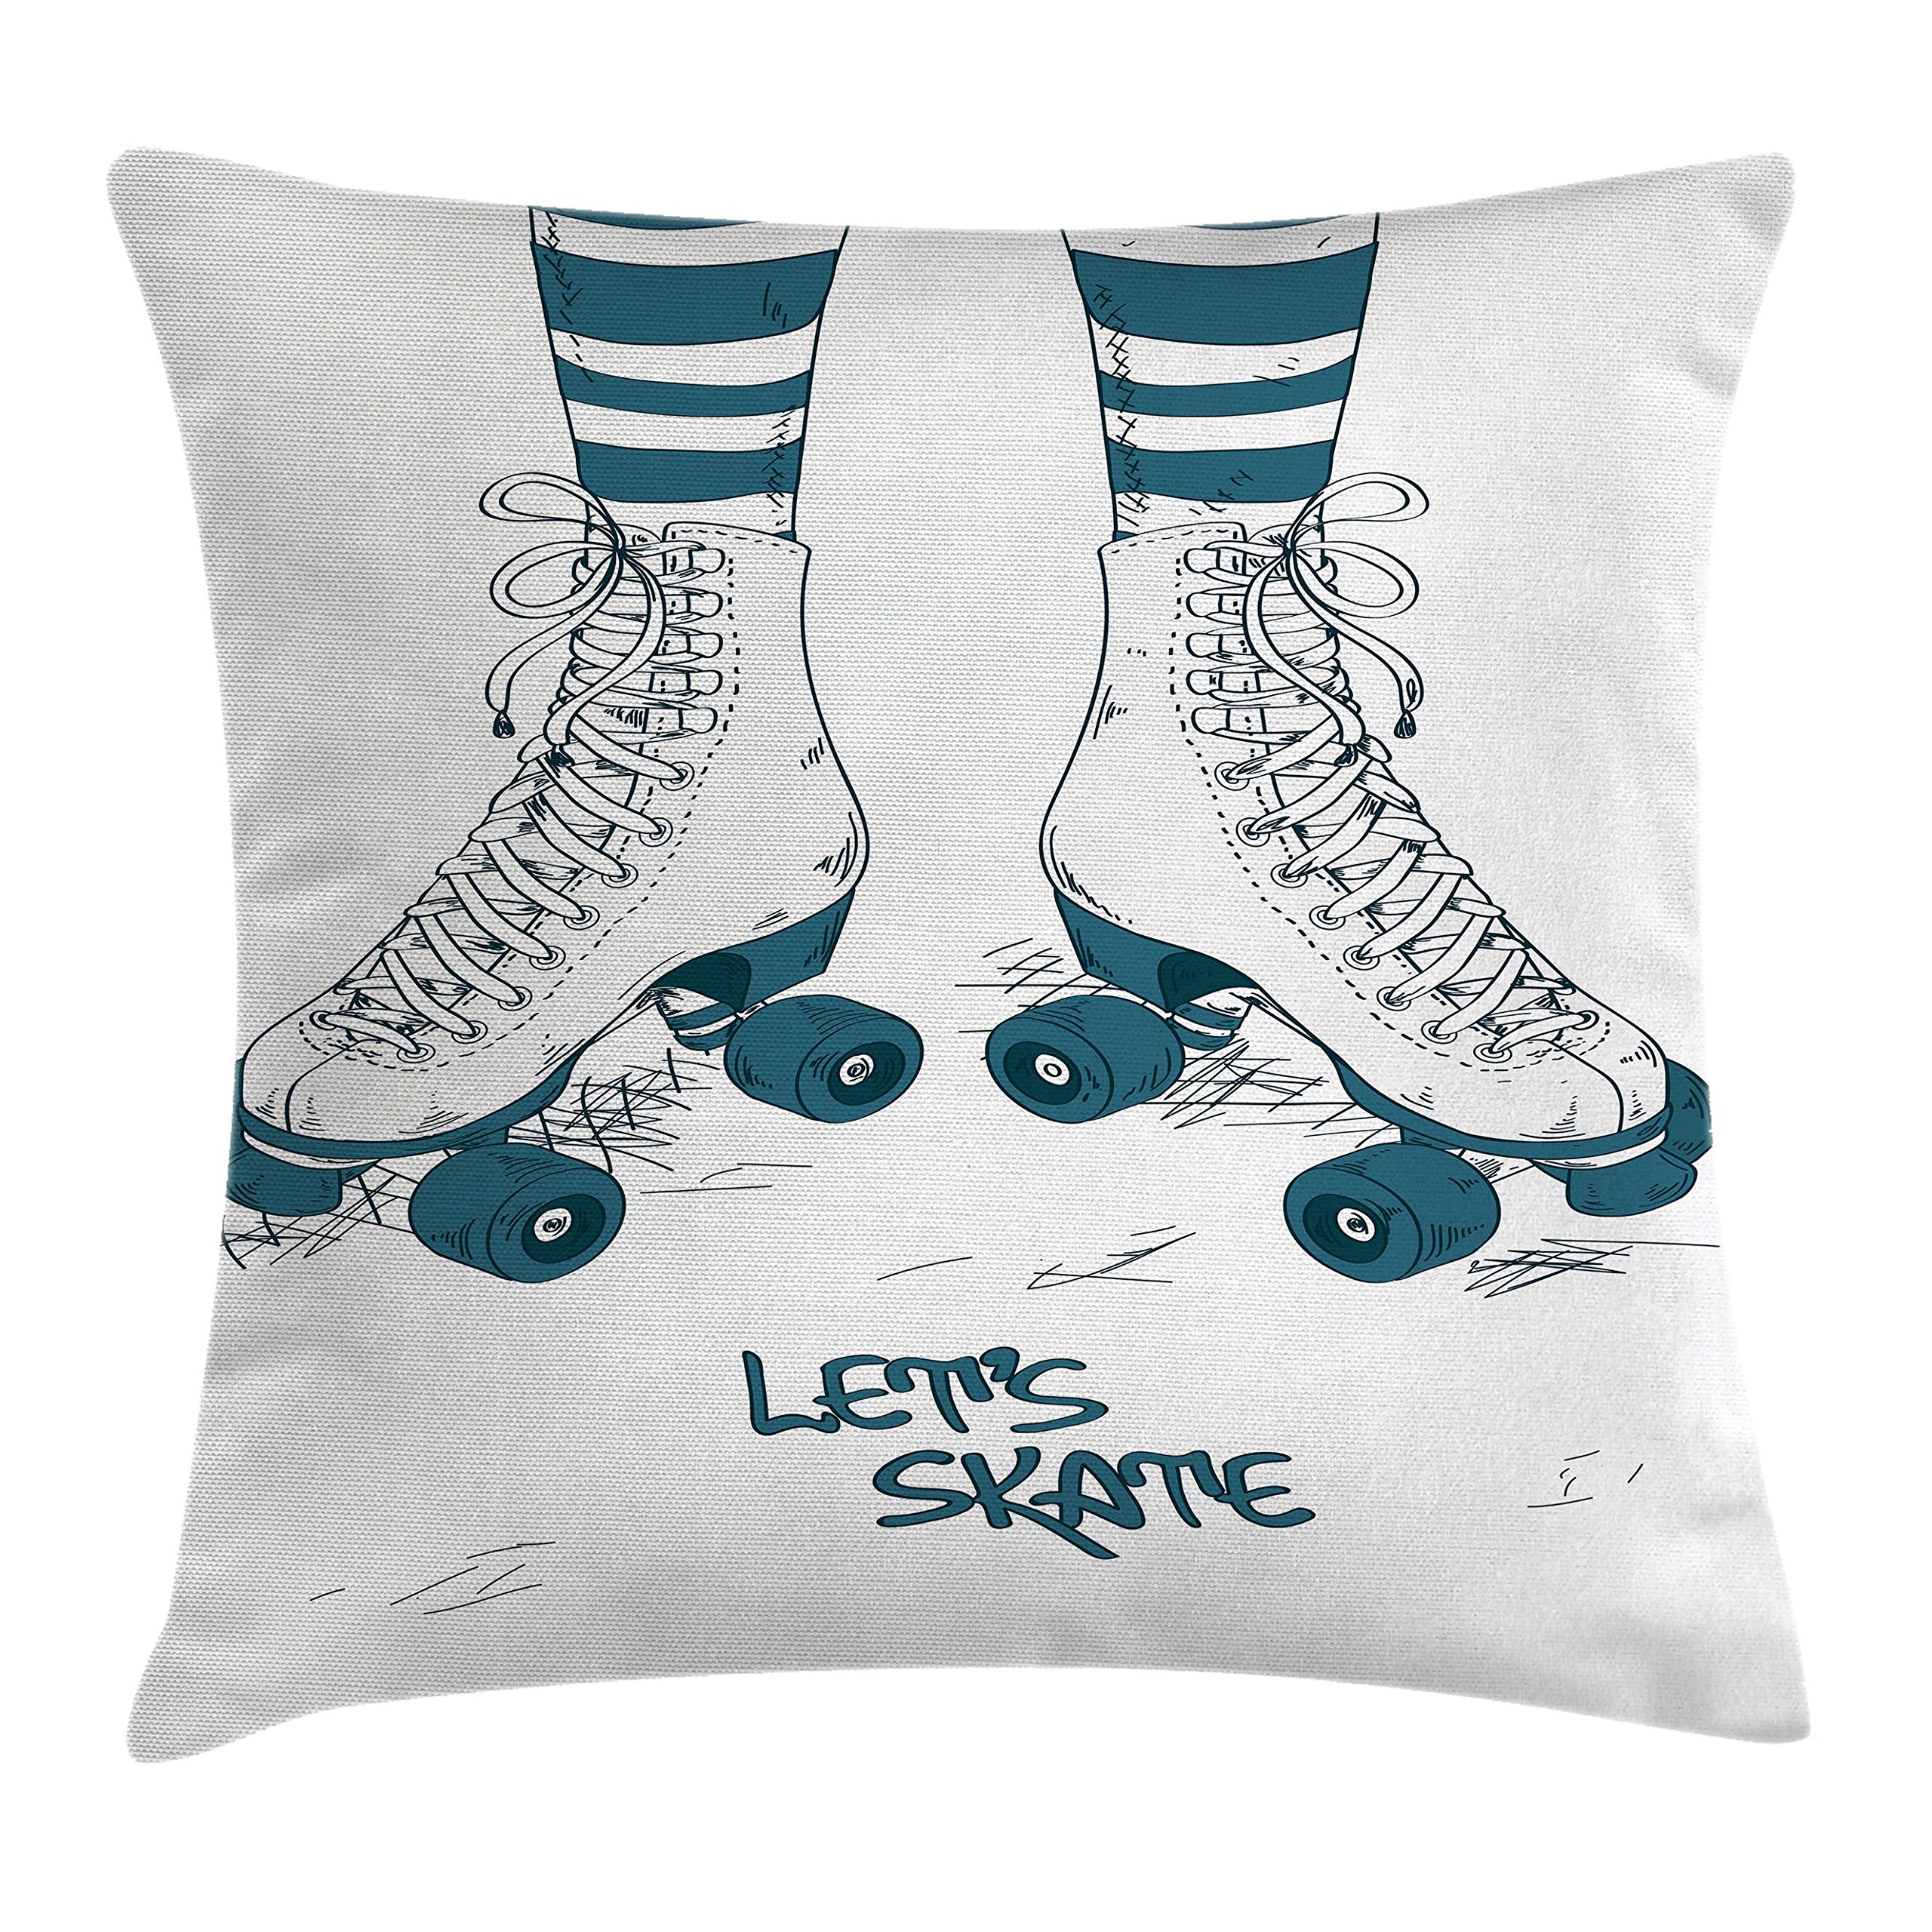 Ambesonne Vintage Throw Pillow Cushion Cover, Girl's Legs in Stripes Stockings and Retro Roller Skates Fun Teen Image Art Print, Decorative Square Accent Pillow Case, 18 X18 Inches, Teal White